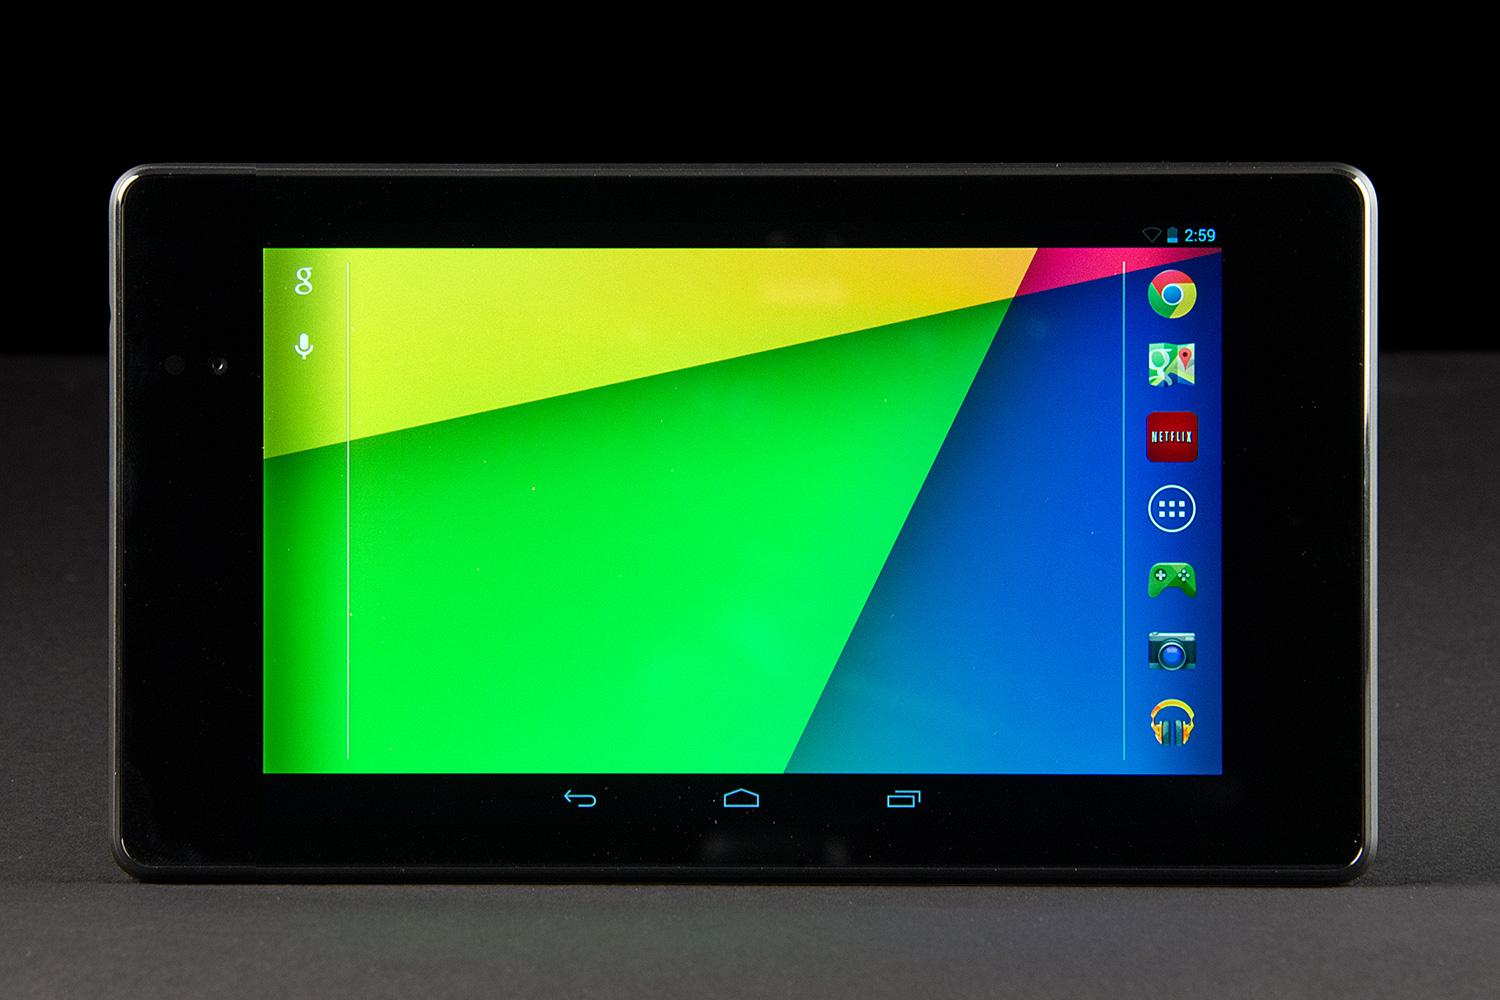 Android 5.1.1 LMY47W for Nexus 7 2013 and LMY47S for Nexus 9 confirmed by Google 1